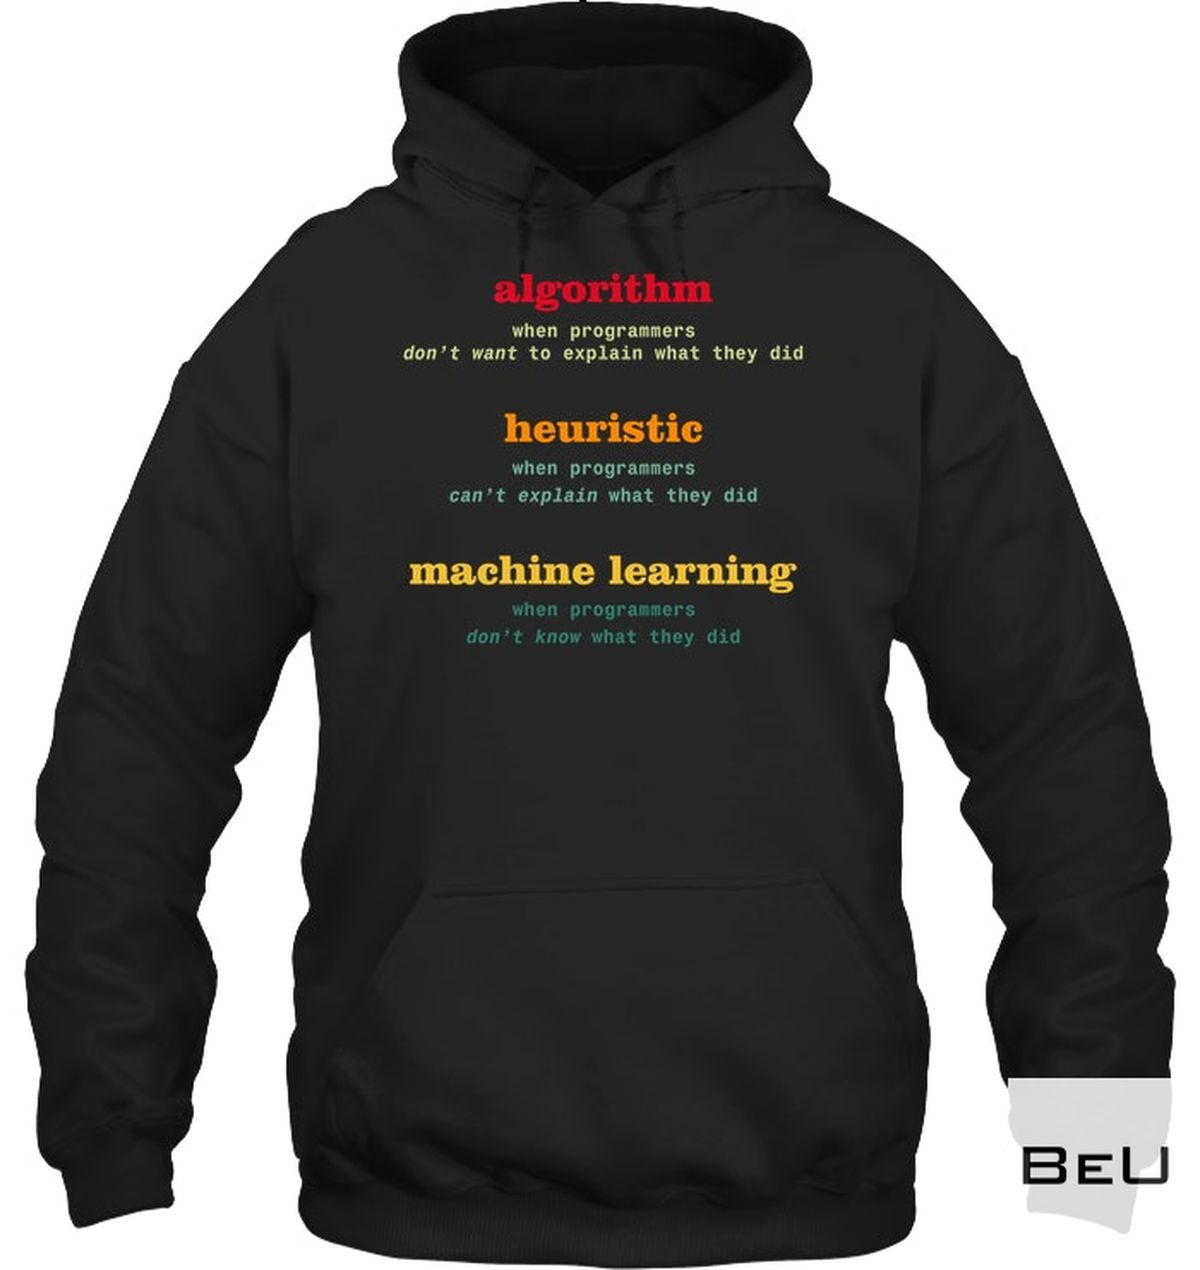 Very Good Quality Algorithm Heuristic Machine Learning Shirt